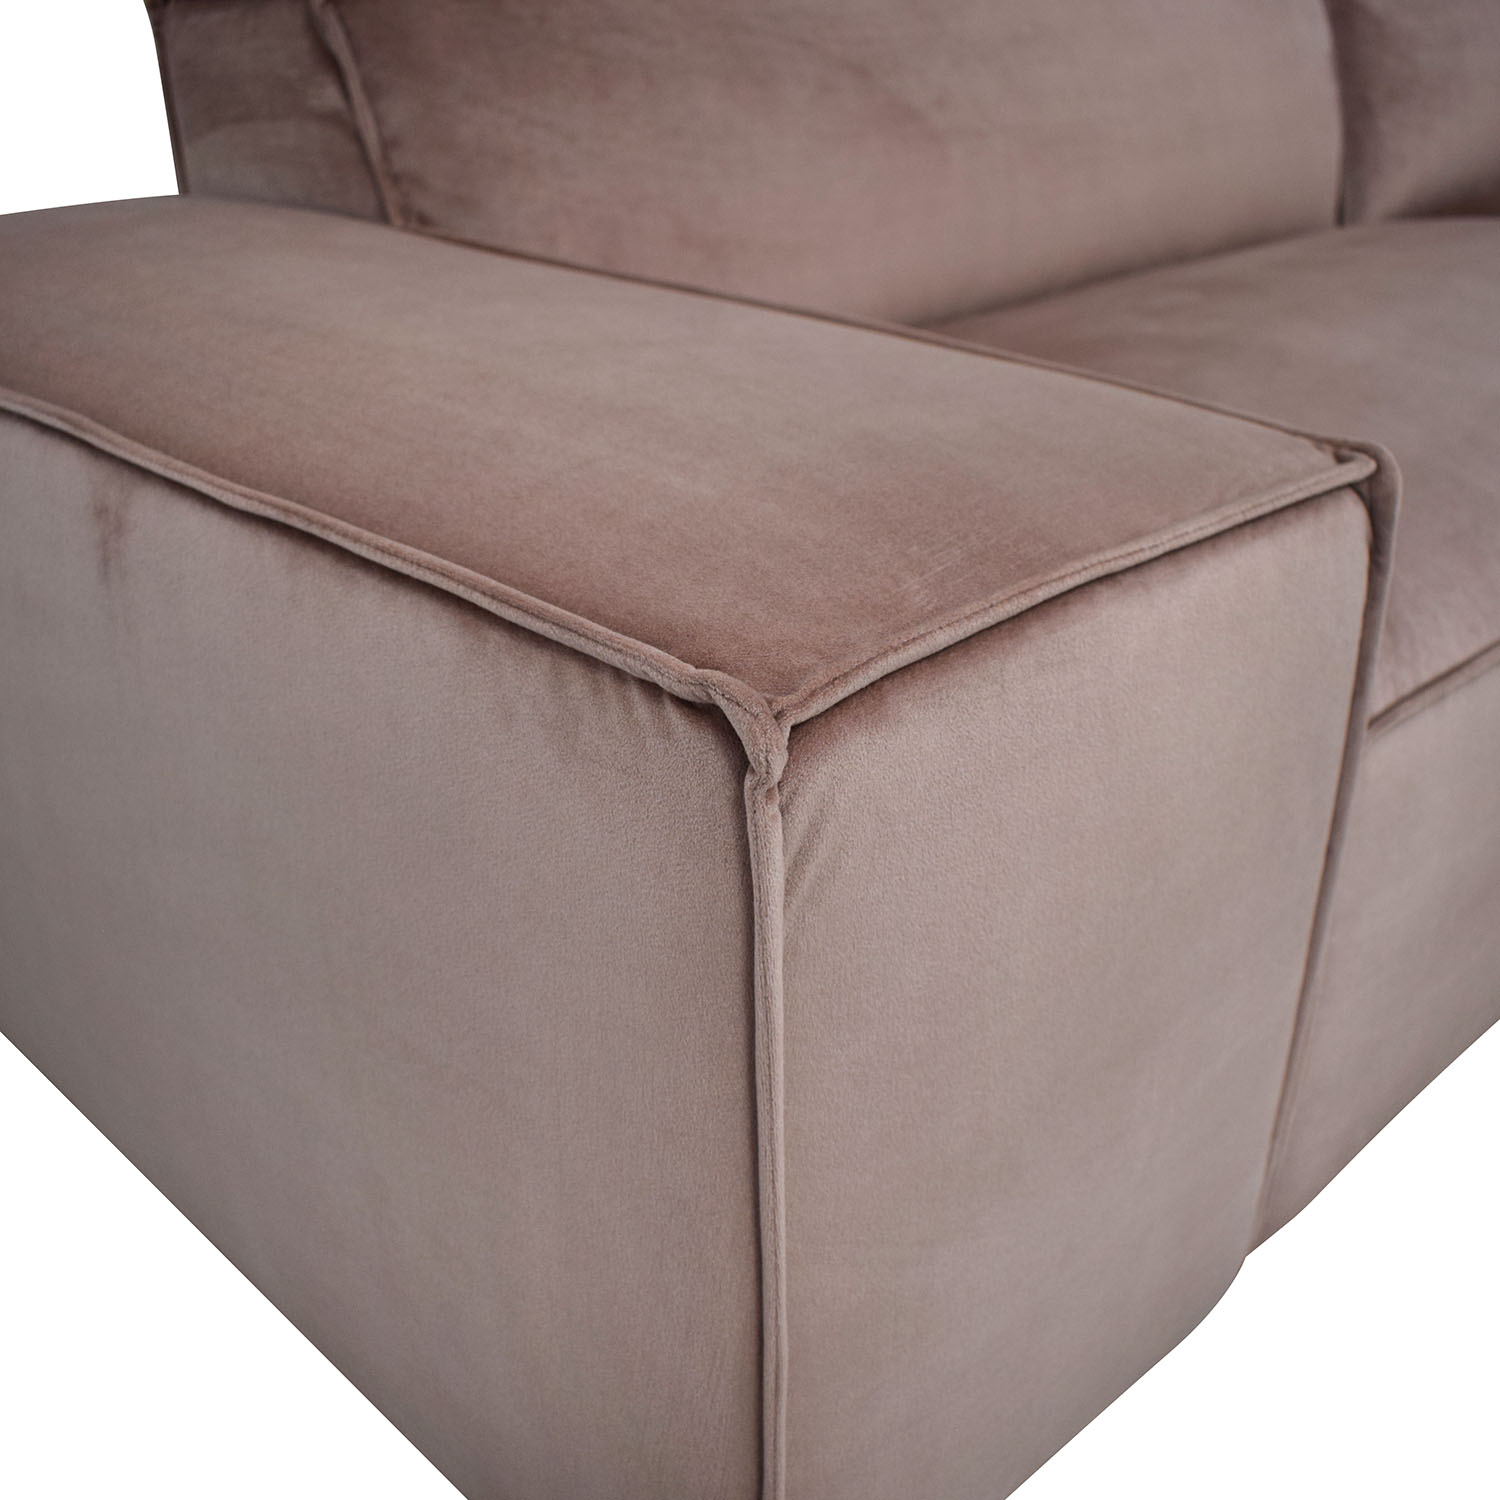 Interior Define Sectional Sofa with Right Chaise pink